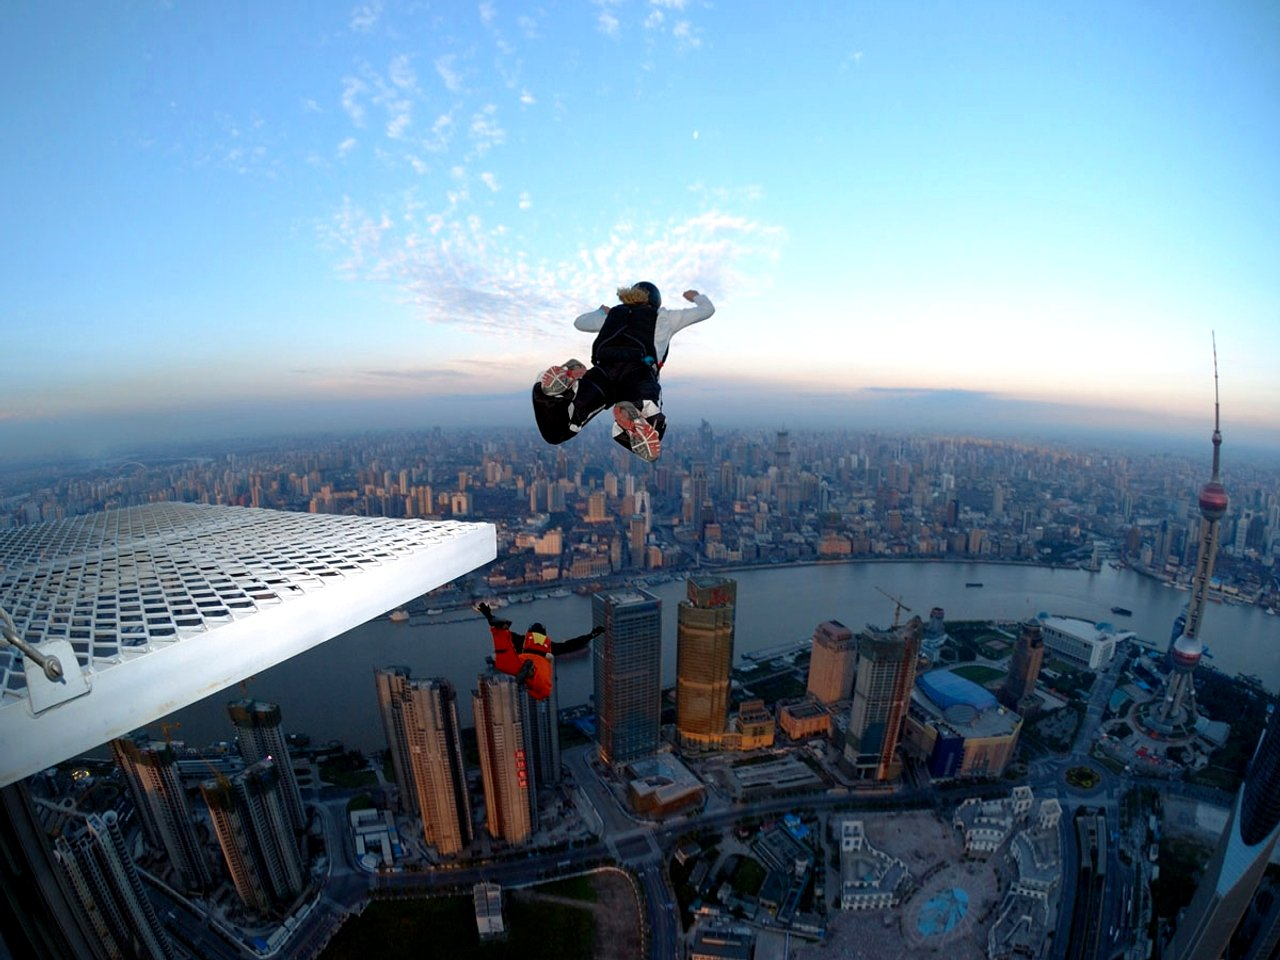 The Extreme Sport Of BASE Jumping